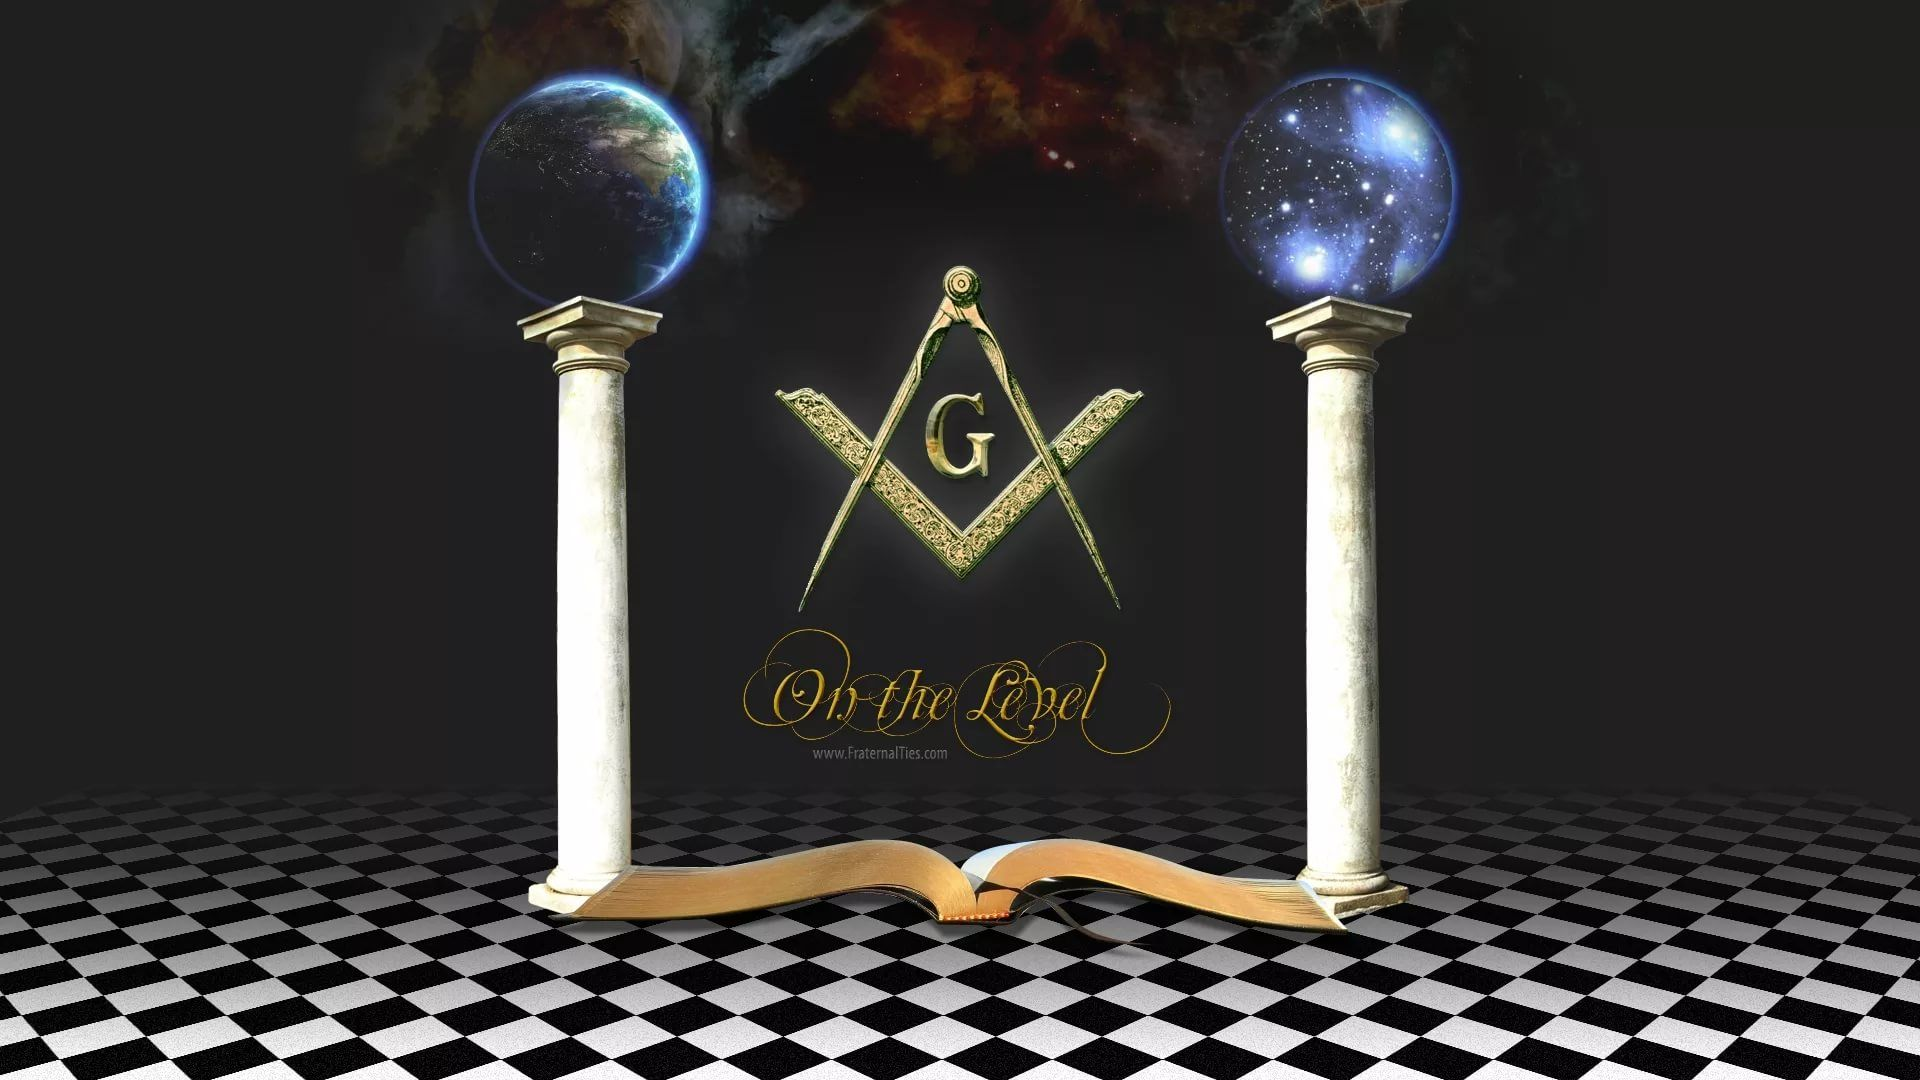 Freemason desktop wallpaper